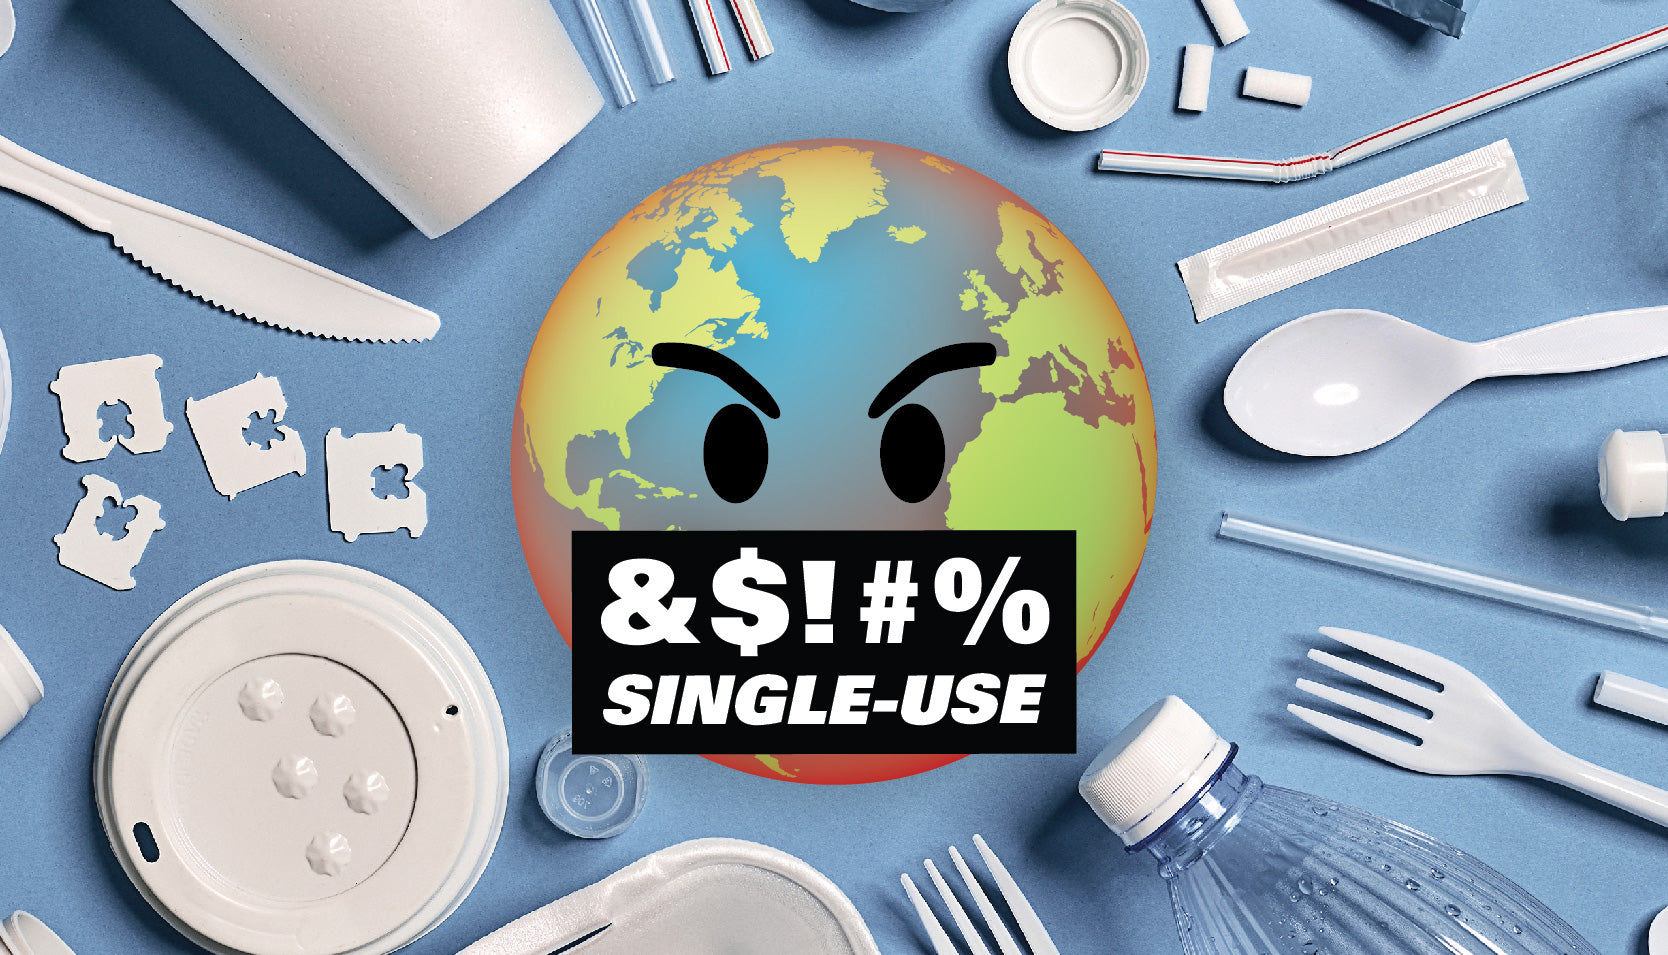 A Pledge to #effsingleuse Doesn't Mean You Have to Go 100% Plastic-Free